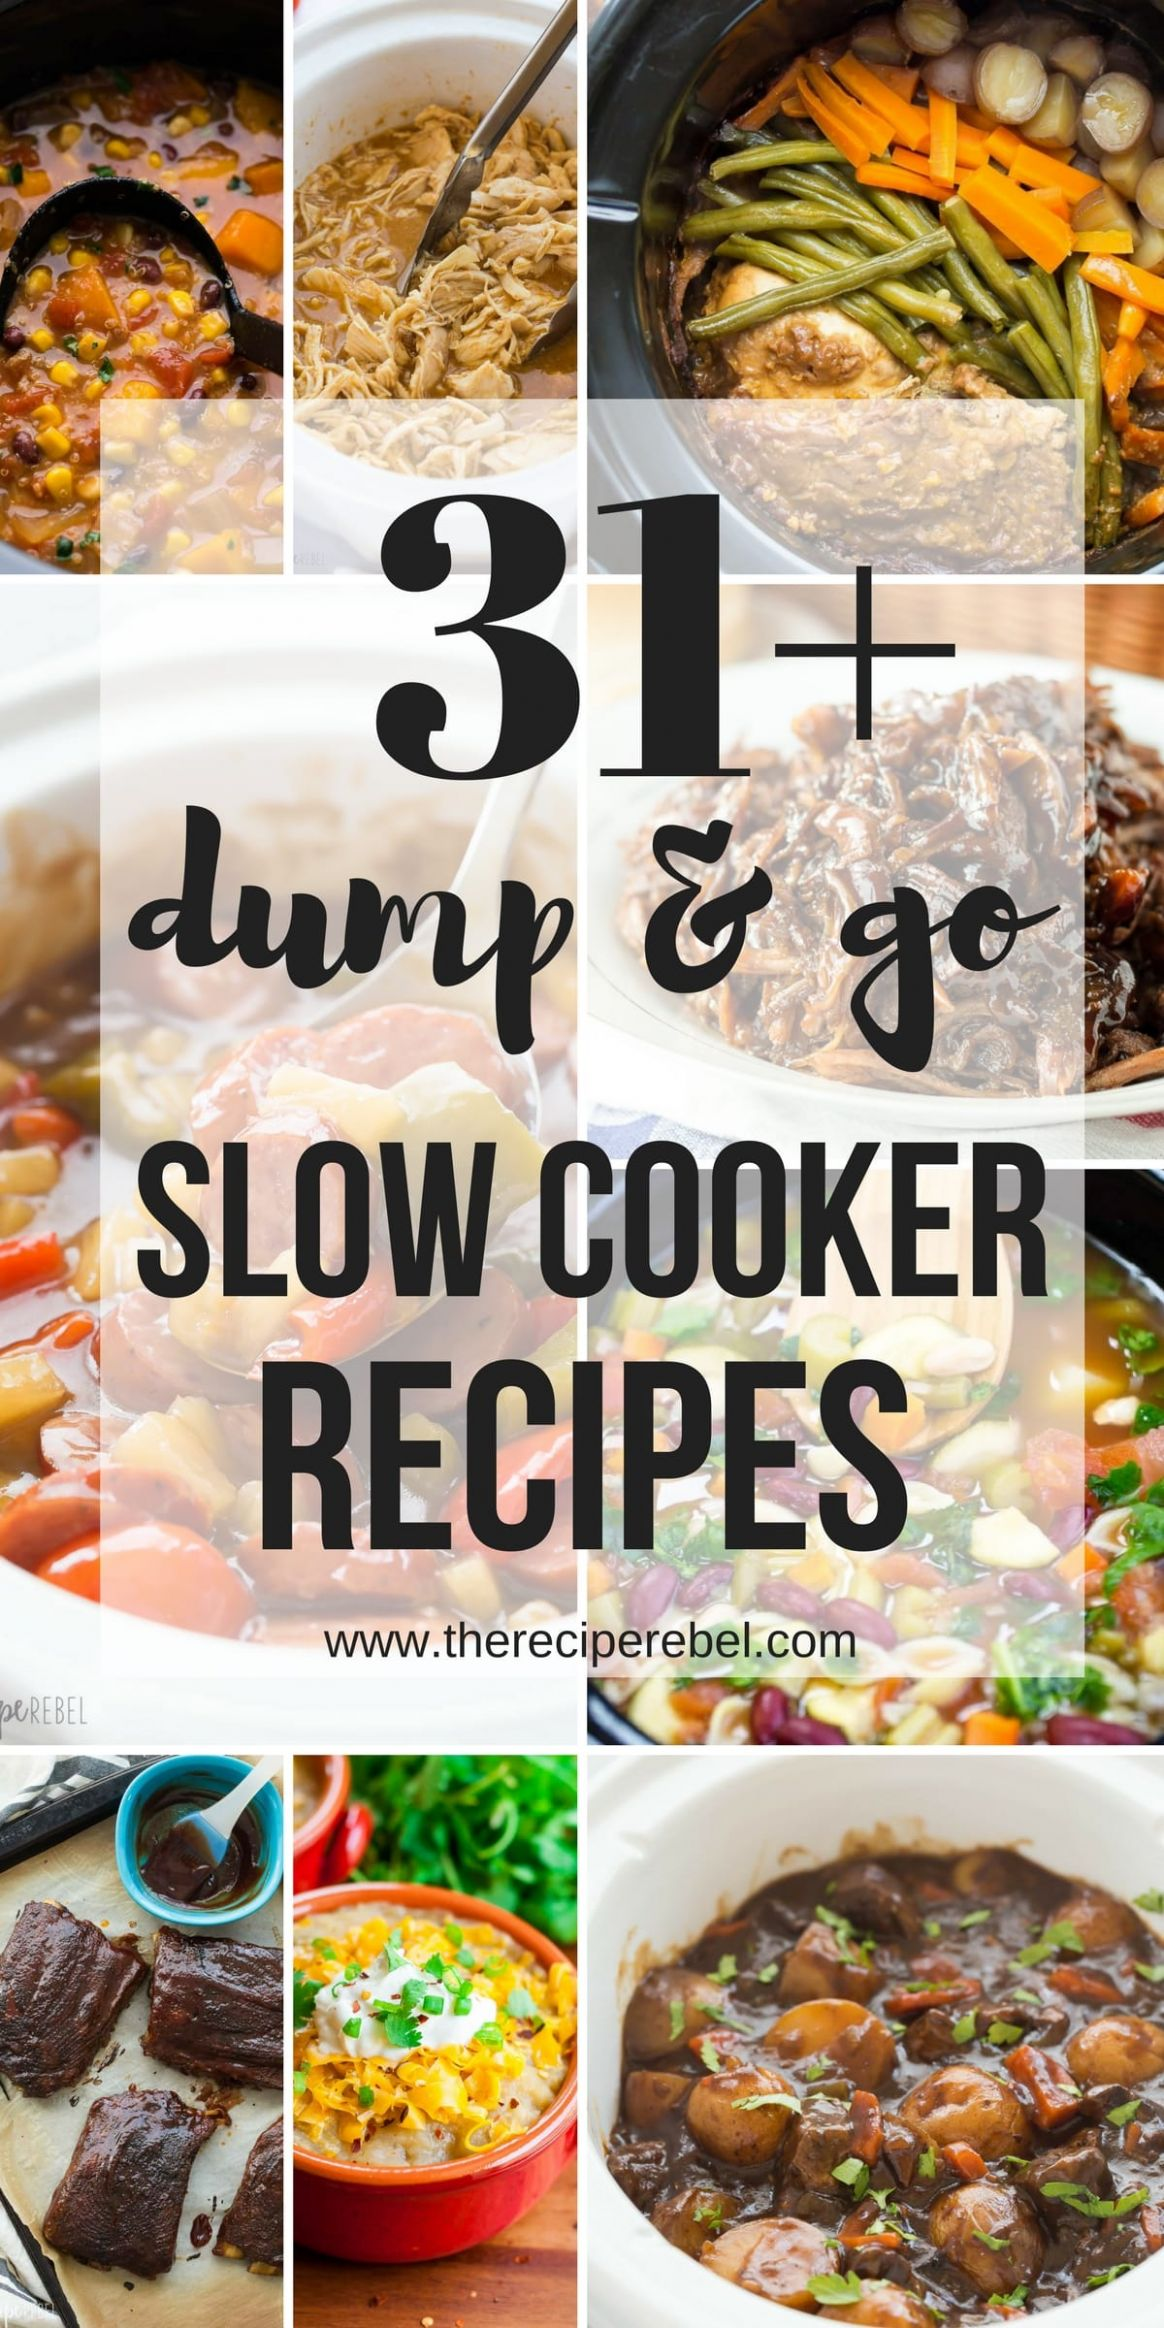 9 Dump and Go Slow Cooker Recipes (Crock Pot Dump Meals) - Dinner Recipes Crockpot